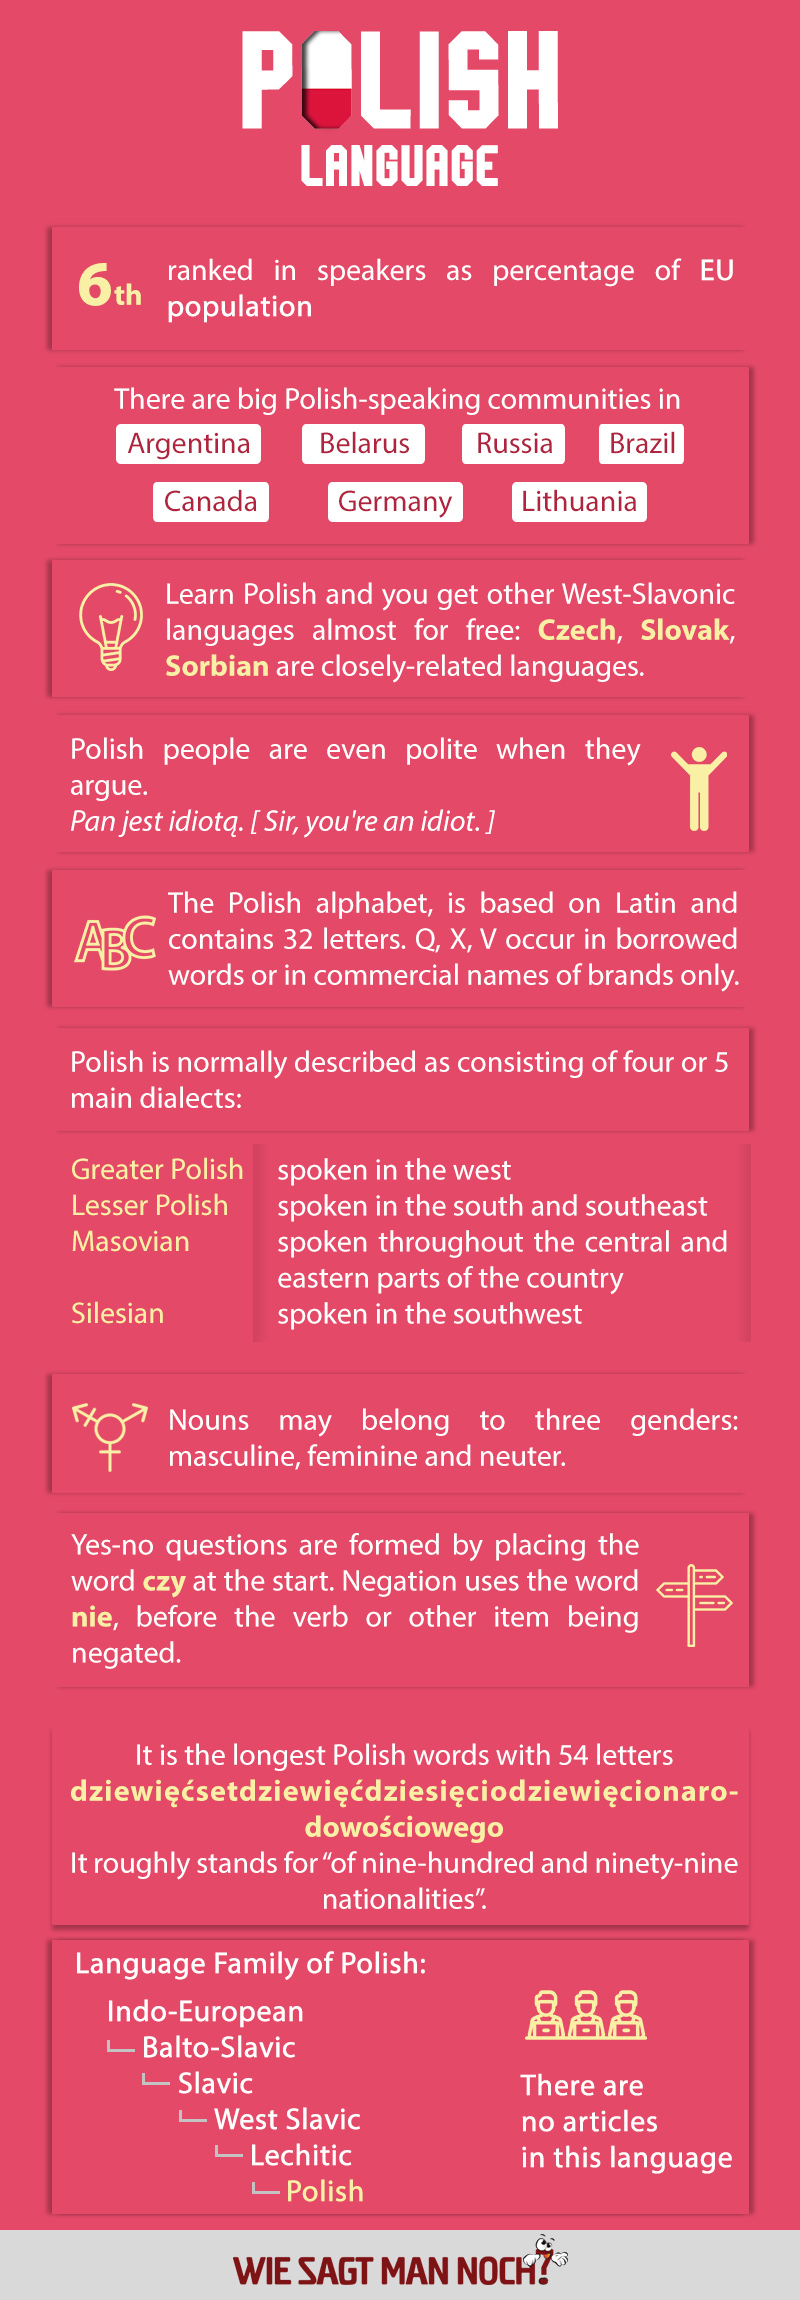 facts about polish